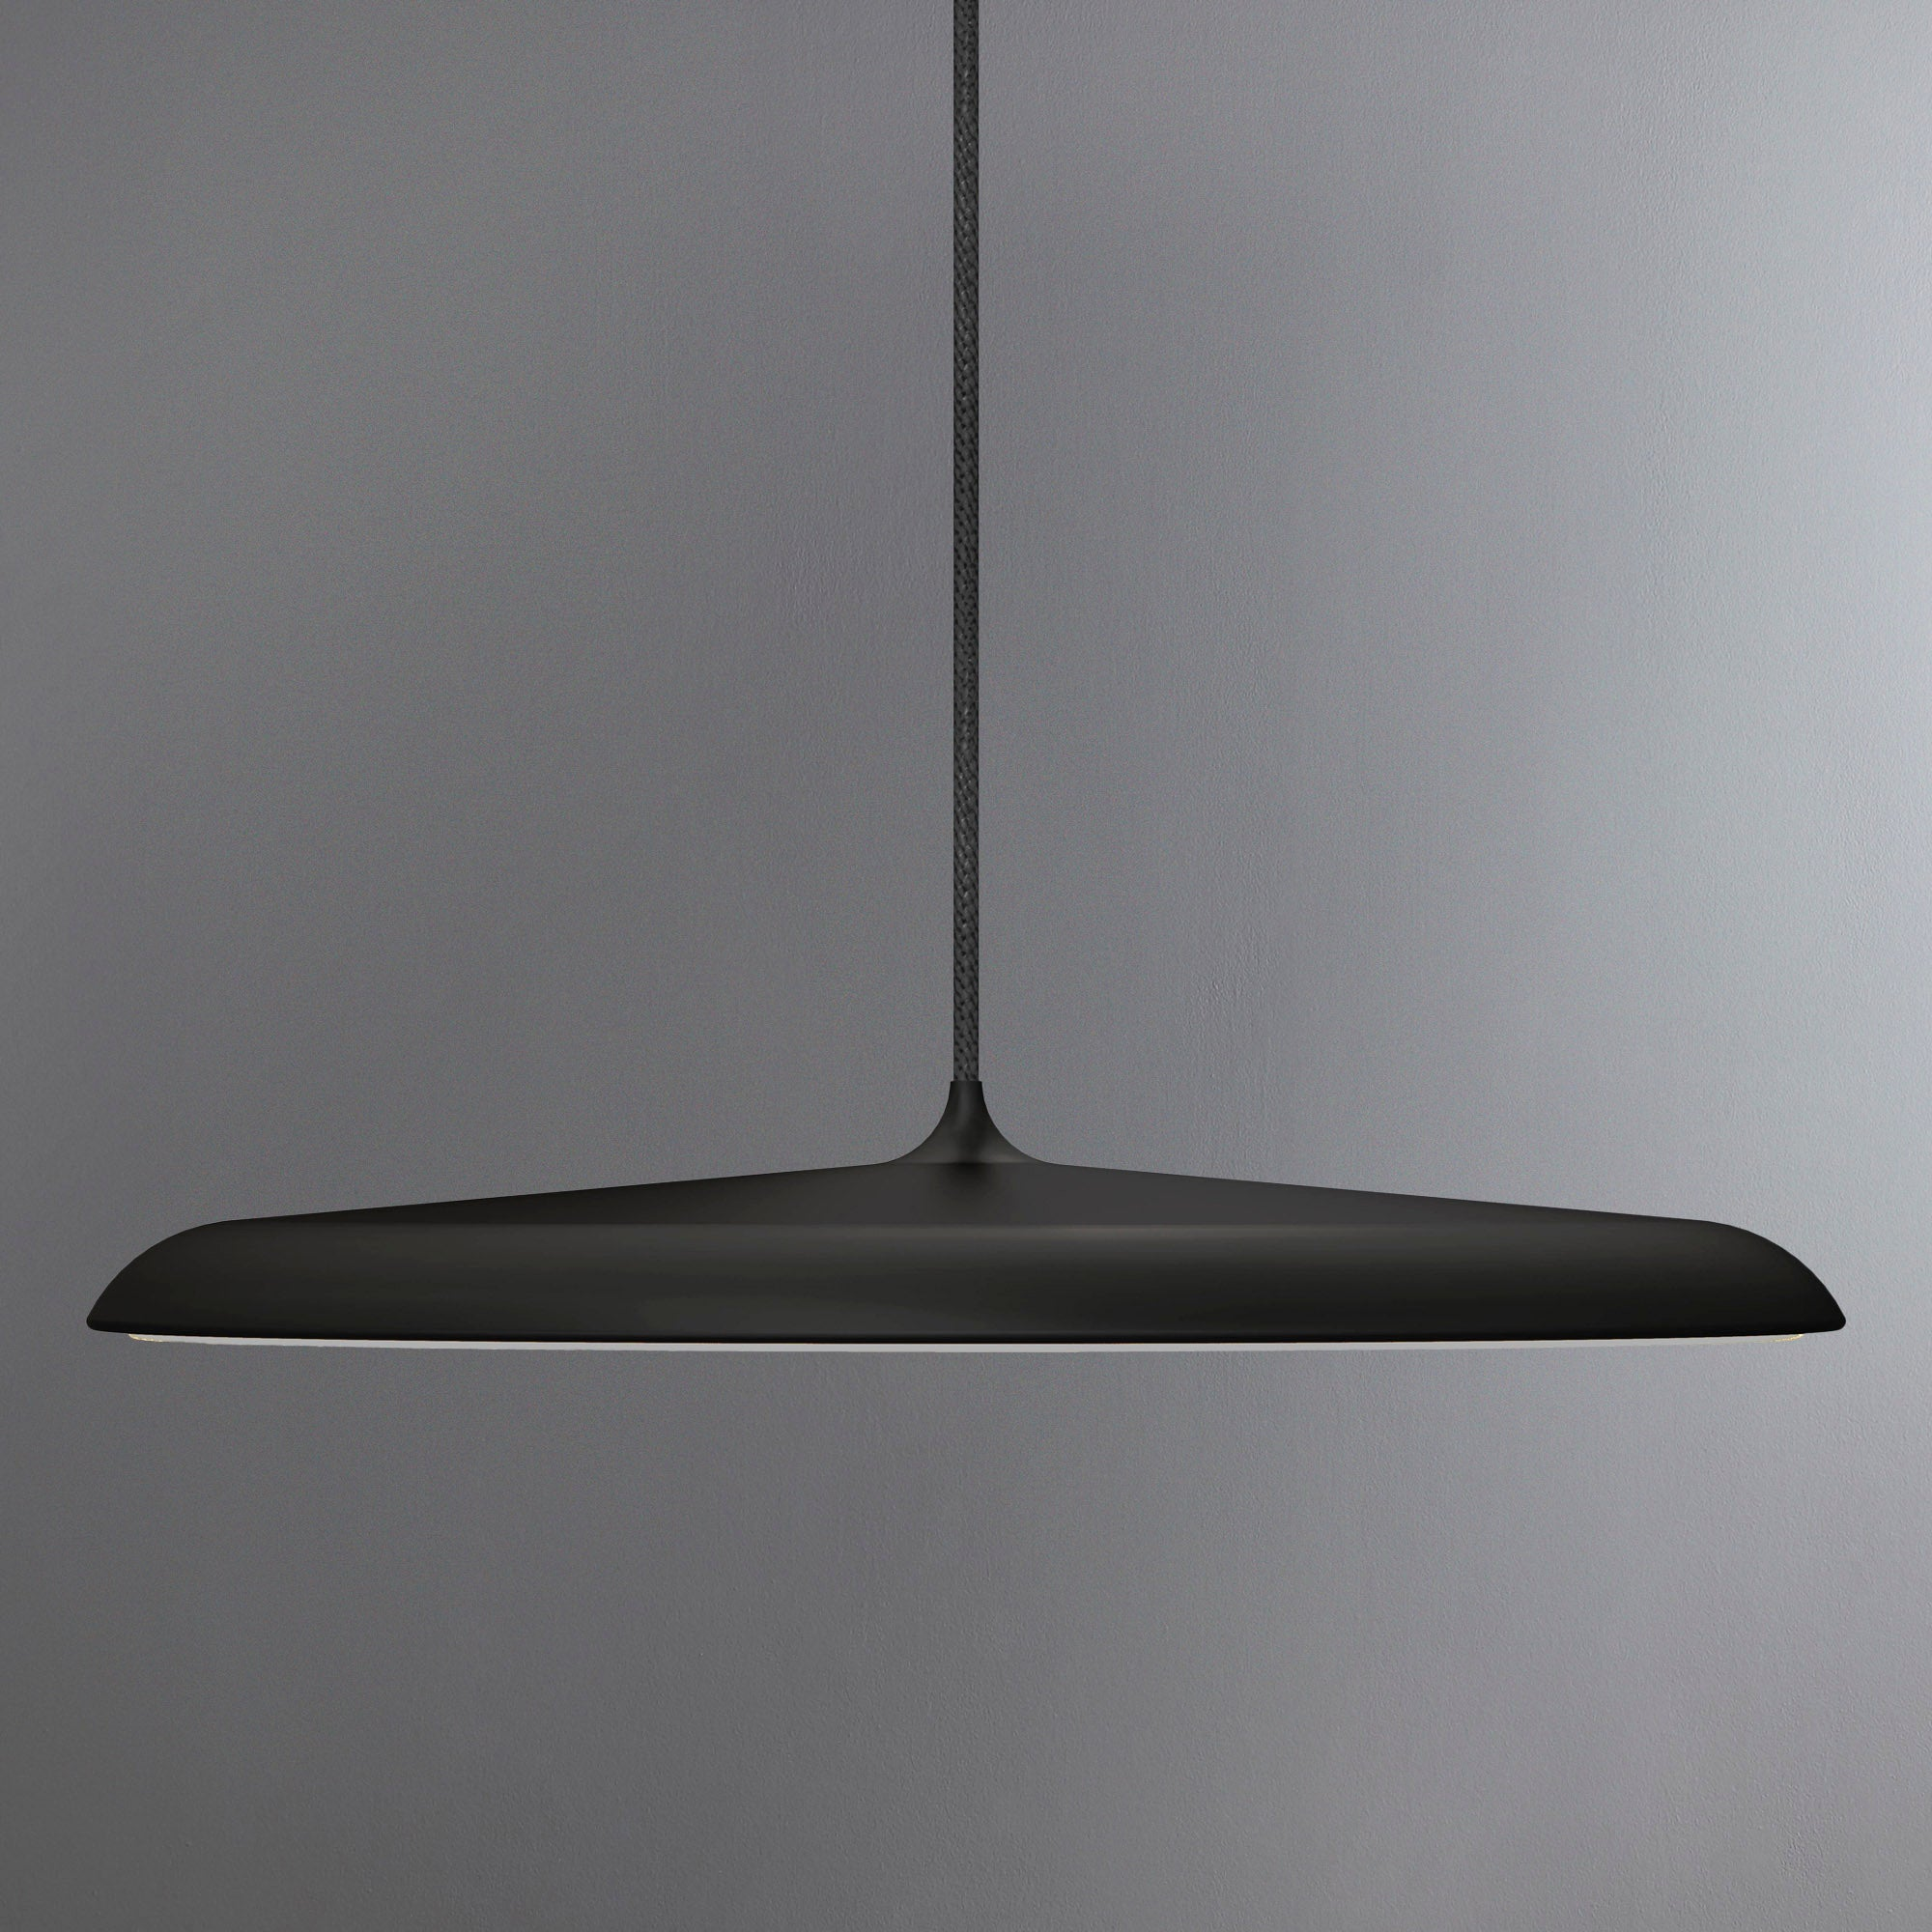 Image of Artist Large Black LED Pendant Light Fitting Black